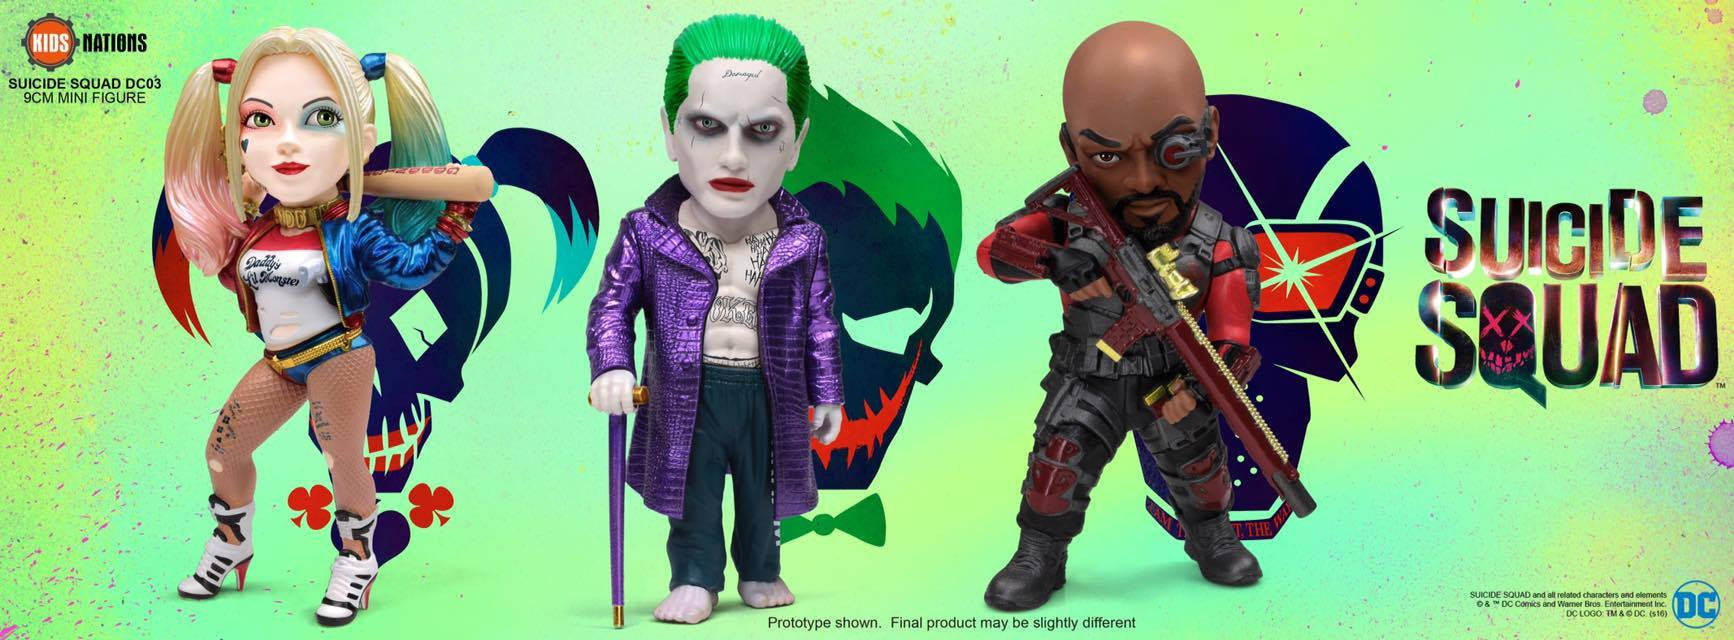 Kids Nations DC03 - Suicide Squad - Set of 3 - Marvelous Toys - 2